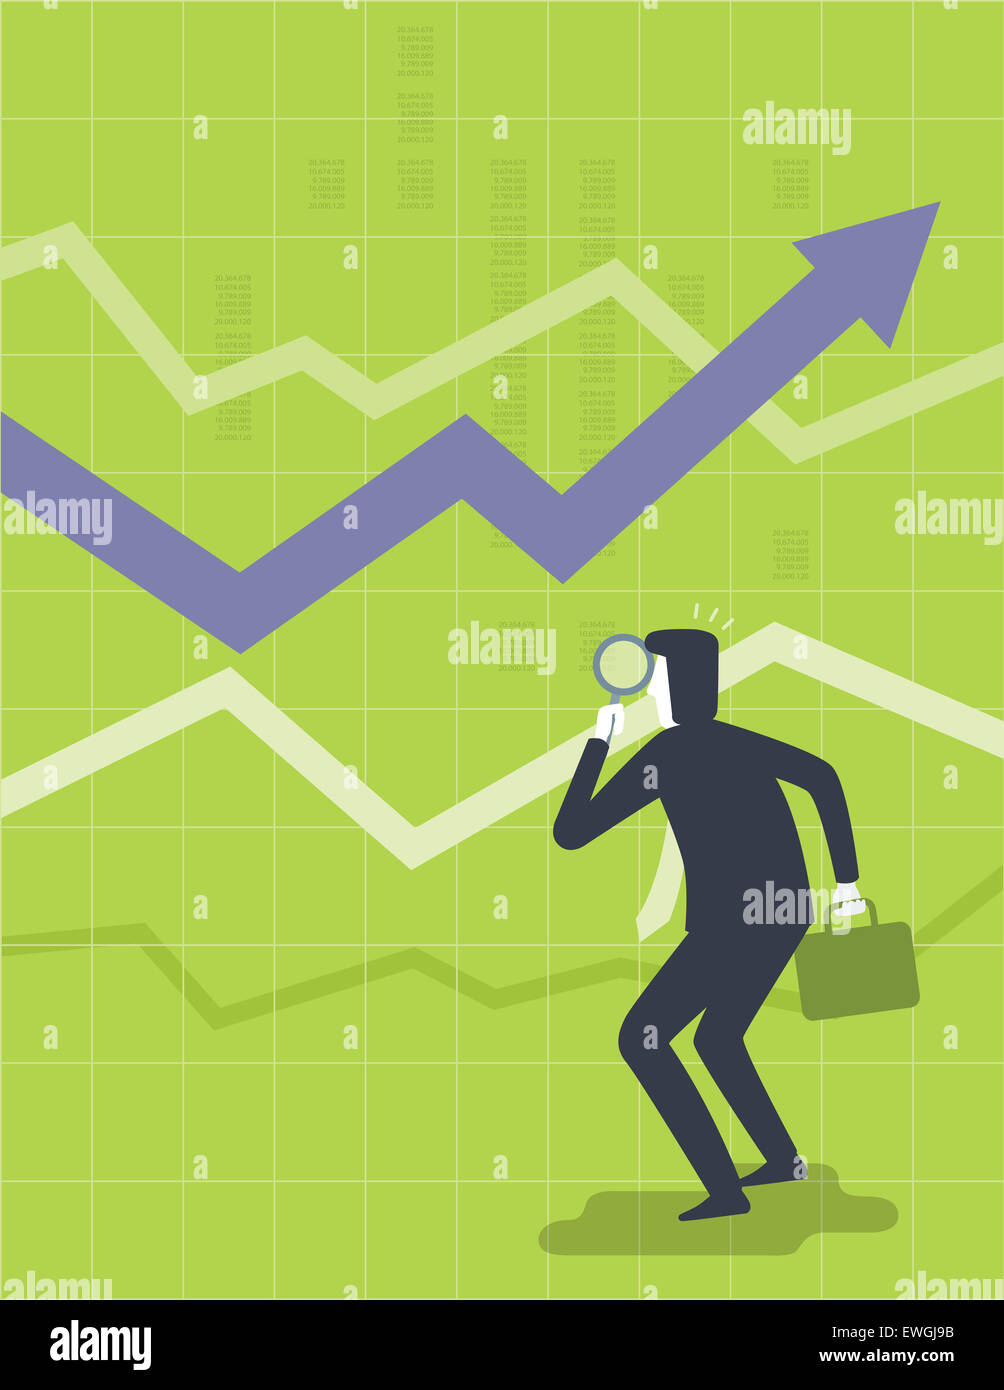 Businessman with magnifying glass analyzing stock market growth chart - Stock Image